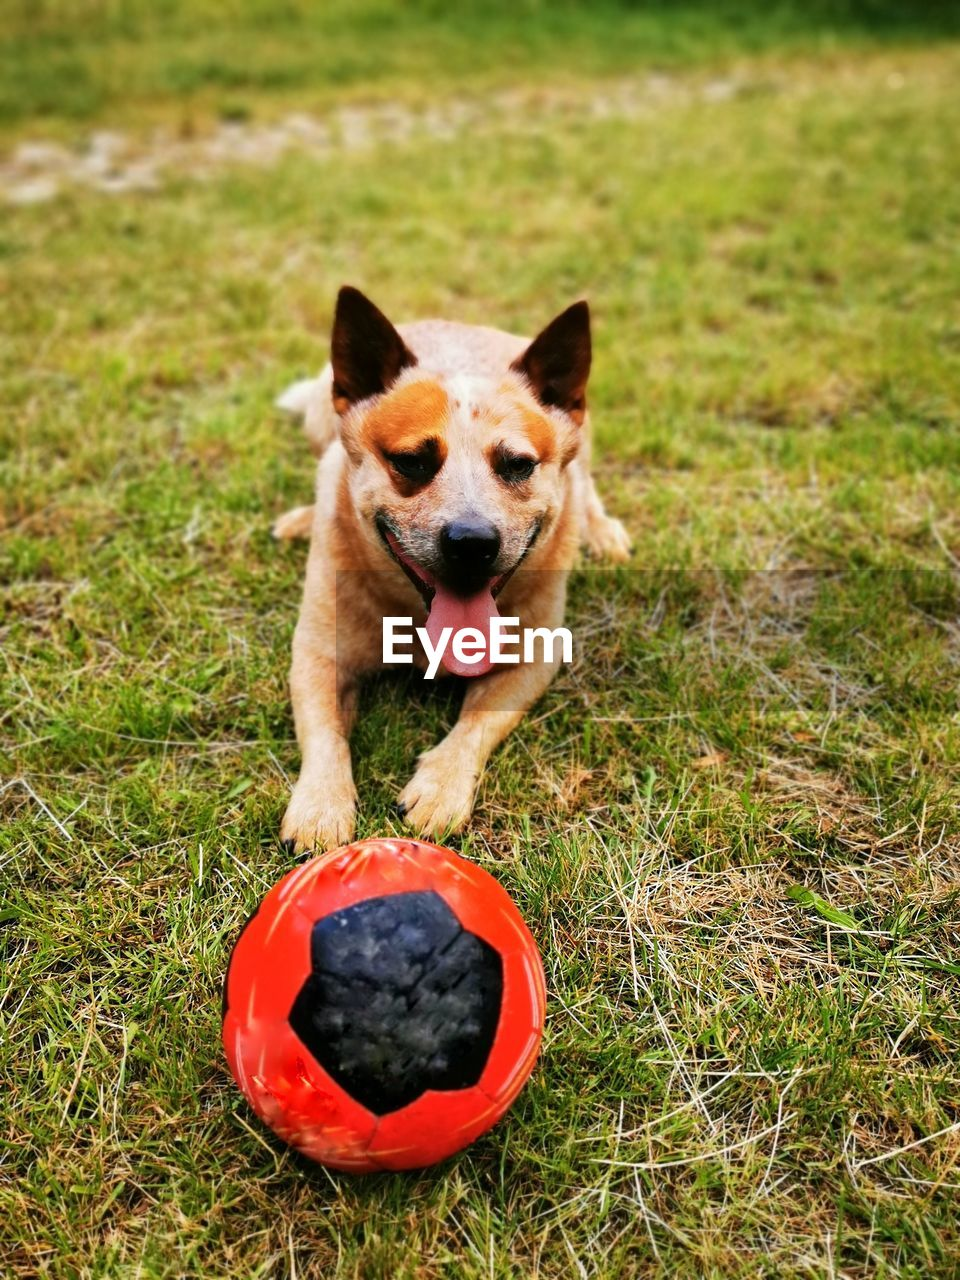 PORTRAIT OF DOG WITH BALL IN MOUTH